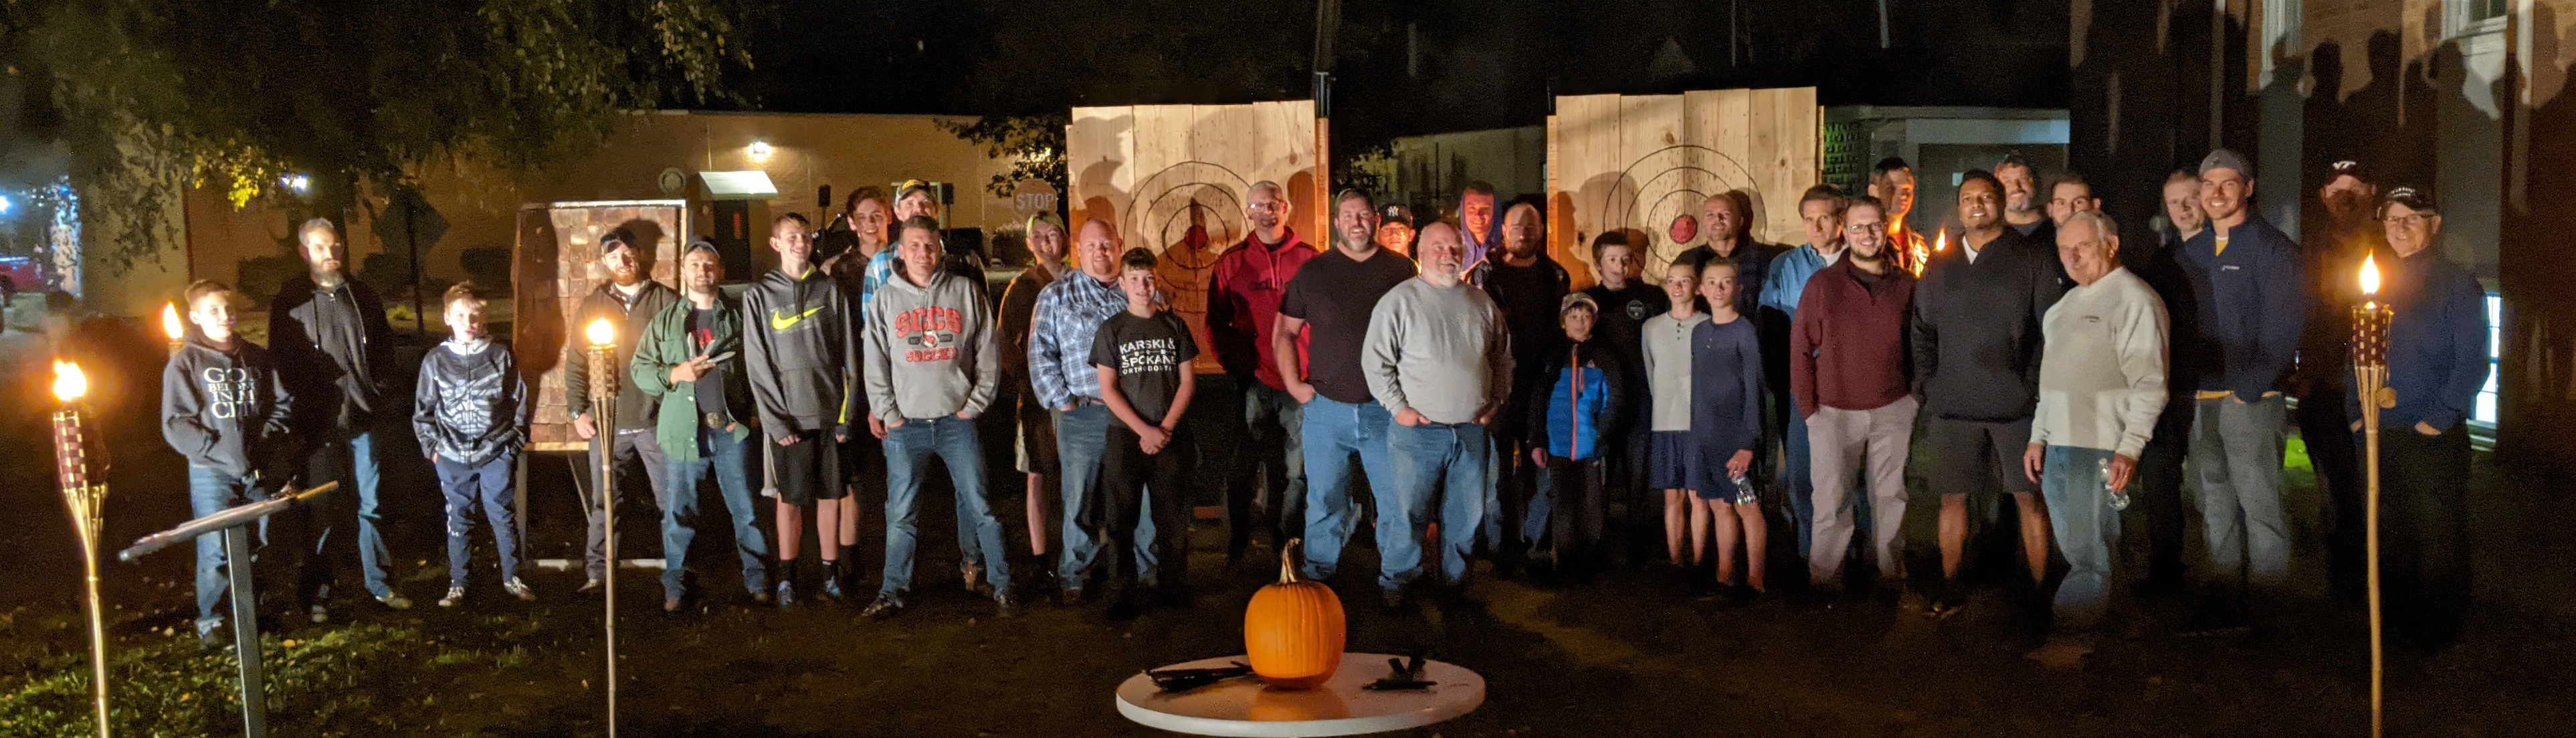 Axe Throwing 2020 - Group Shot - Cropped